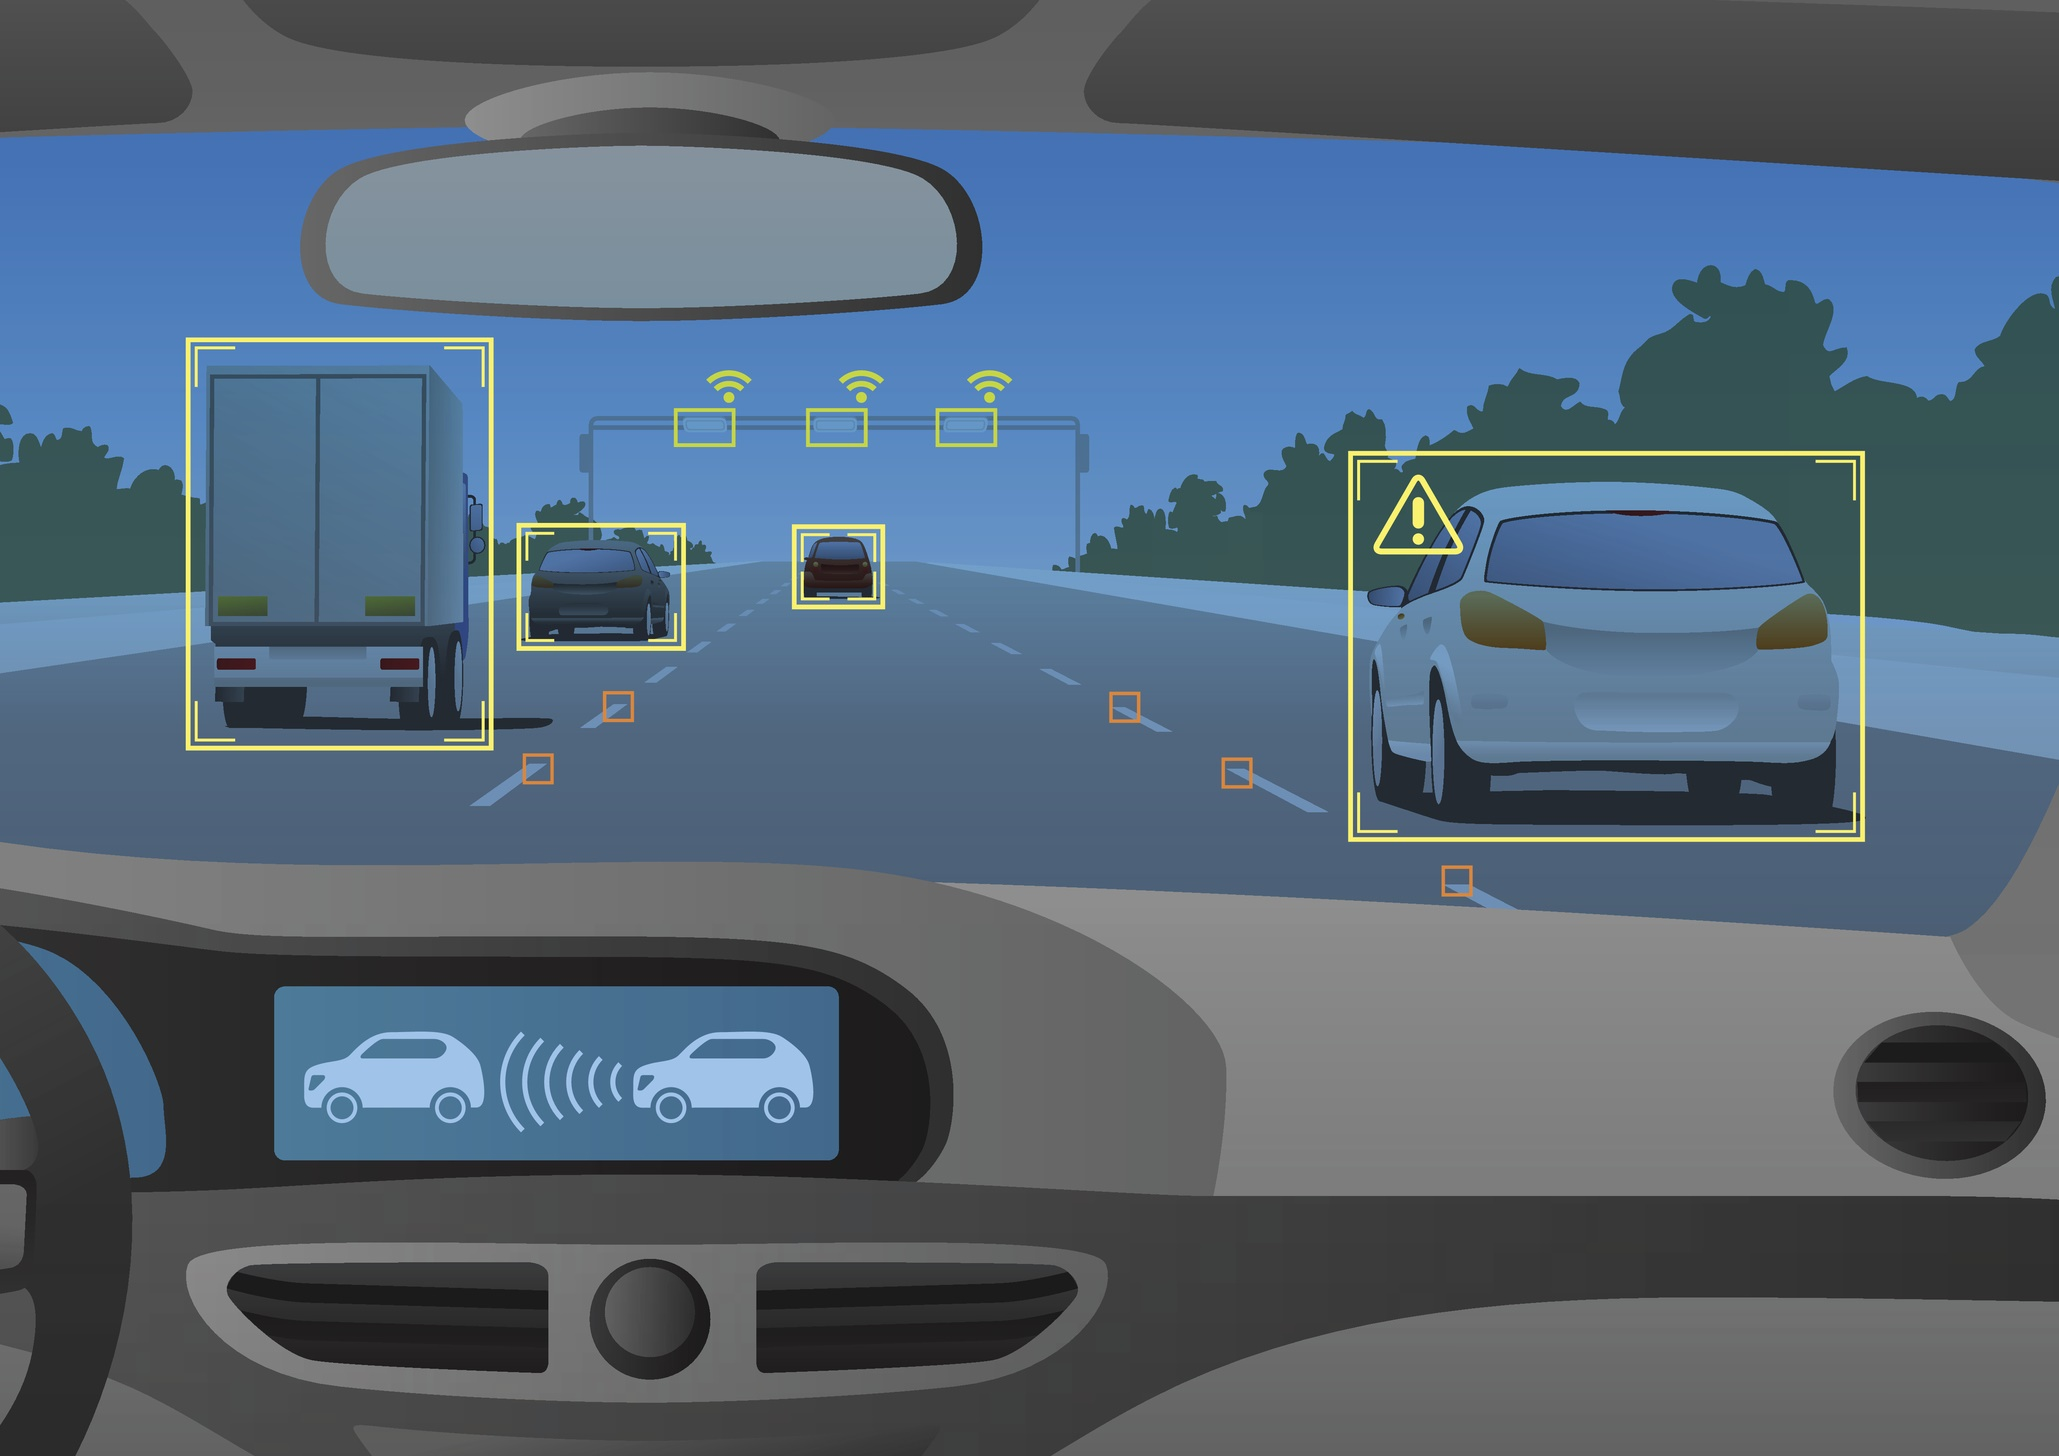 Head up display(HUD) and various information